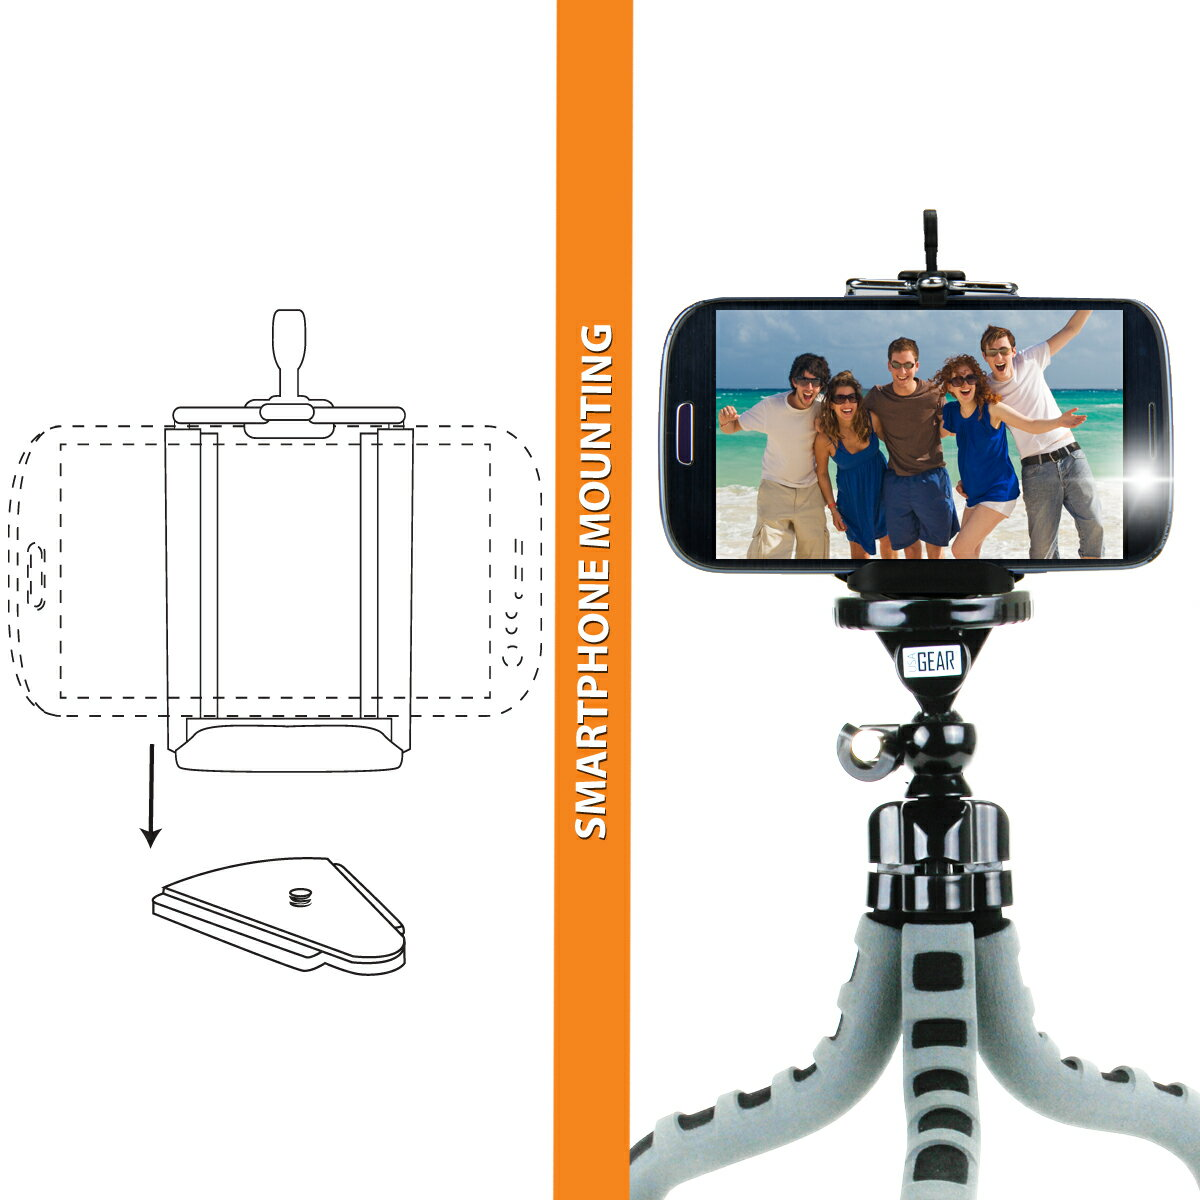 USA GEAR Flexible Tripod with 360-Degree Rotating Mount, Smartphone Adapter and Quick-Release Plate 6